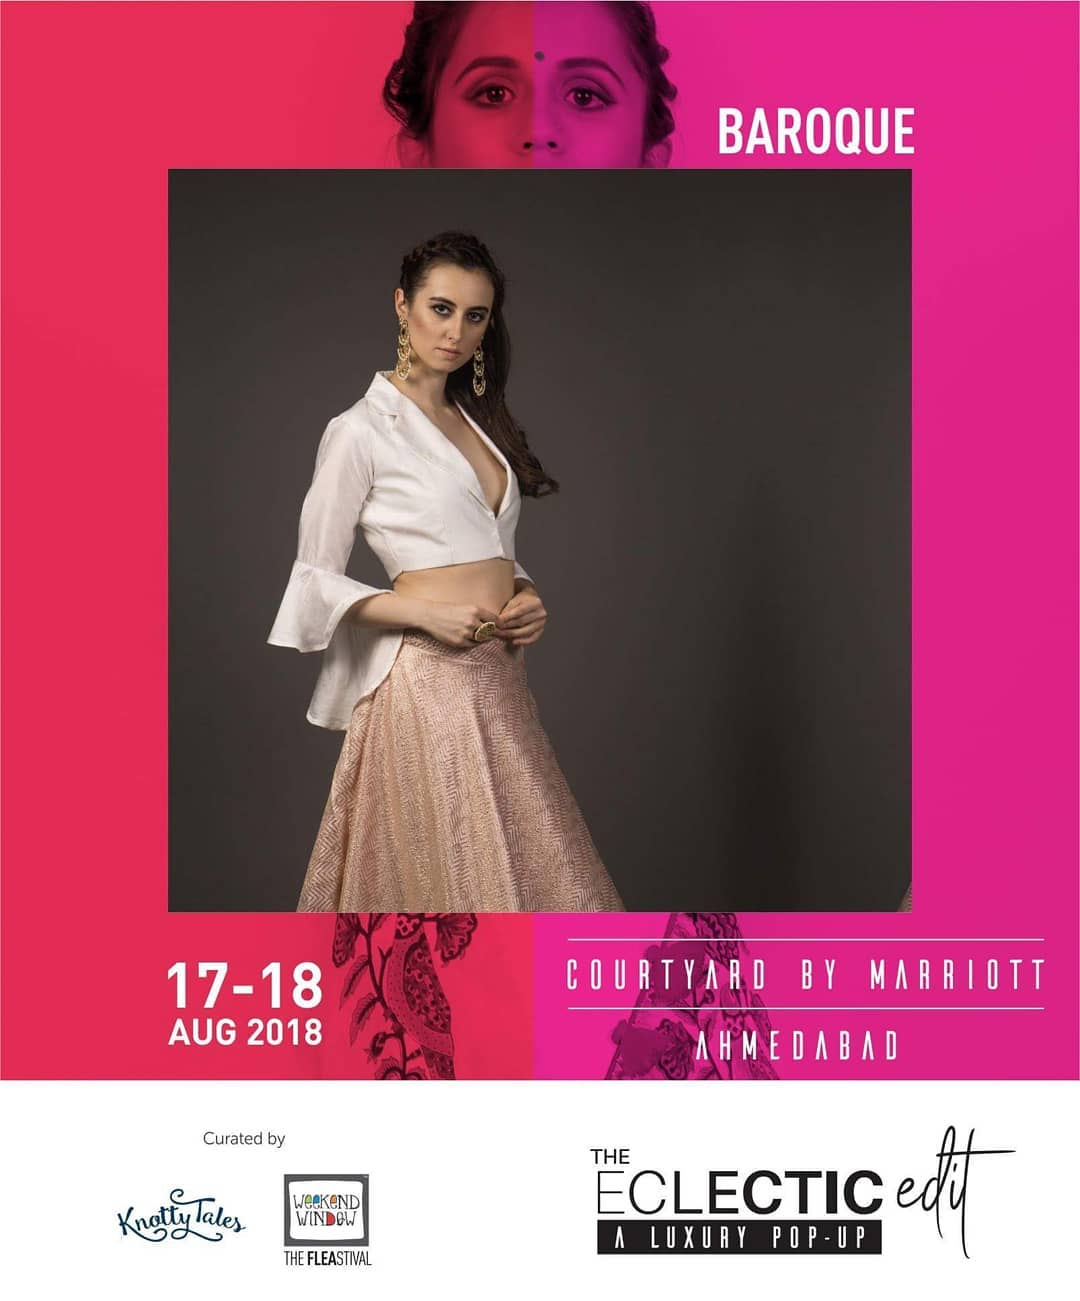 A design house based in Delhi, @baroque_by_preeti_batra  has been evolved into an indo-cocktail evening wear brand. Their fancy evening saris and skirts are stunning and mezmerising! We can't wait to share this shopping experience with you.. 65+ brands showcasing at The Eclectic Edit curated by @knottytales_kt & @weekendwindow .  #cocktail #indowestern #collection #delhi #designer #mezmerising #intricate #cuts #theeclecticedit #knottytales #weekendwindow #shopping #luxuryshopping #style #fancy